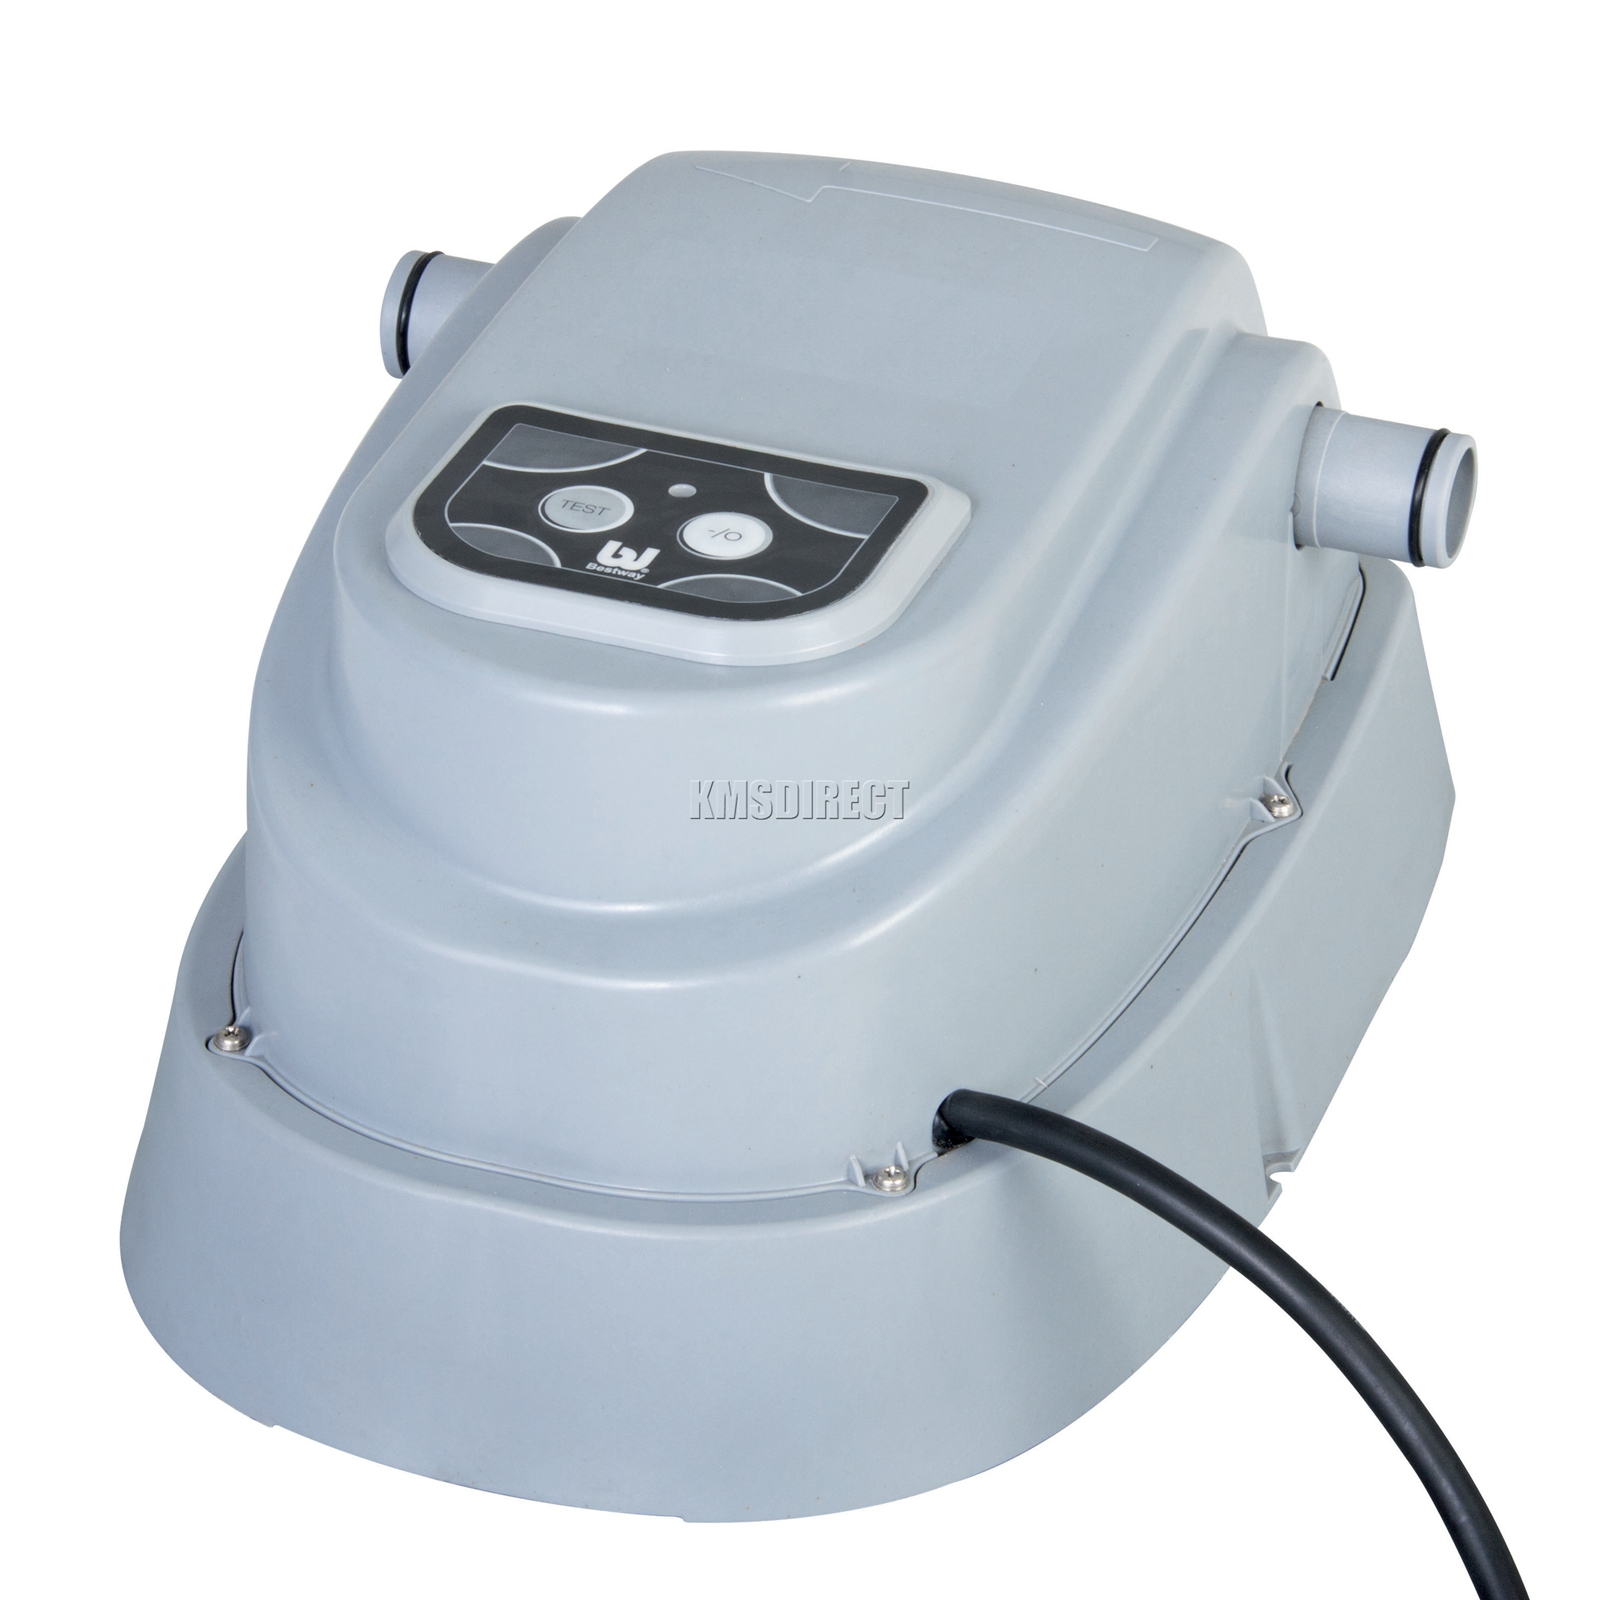 bestway electric swimming pool heater 2 8kw 2800w for above ground bw58259 new ebay